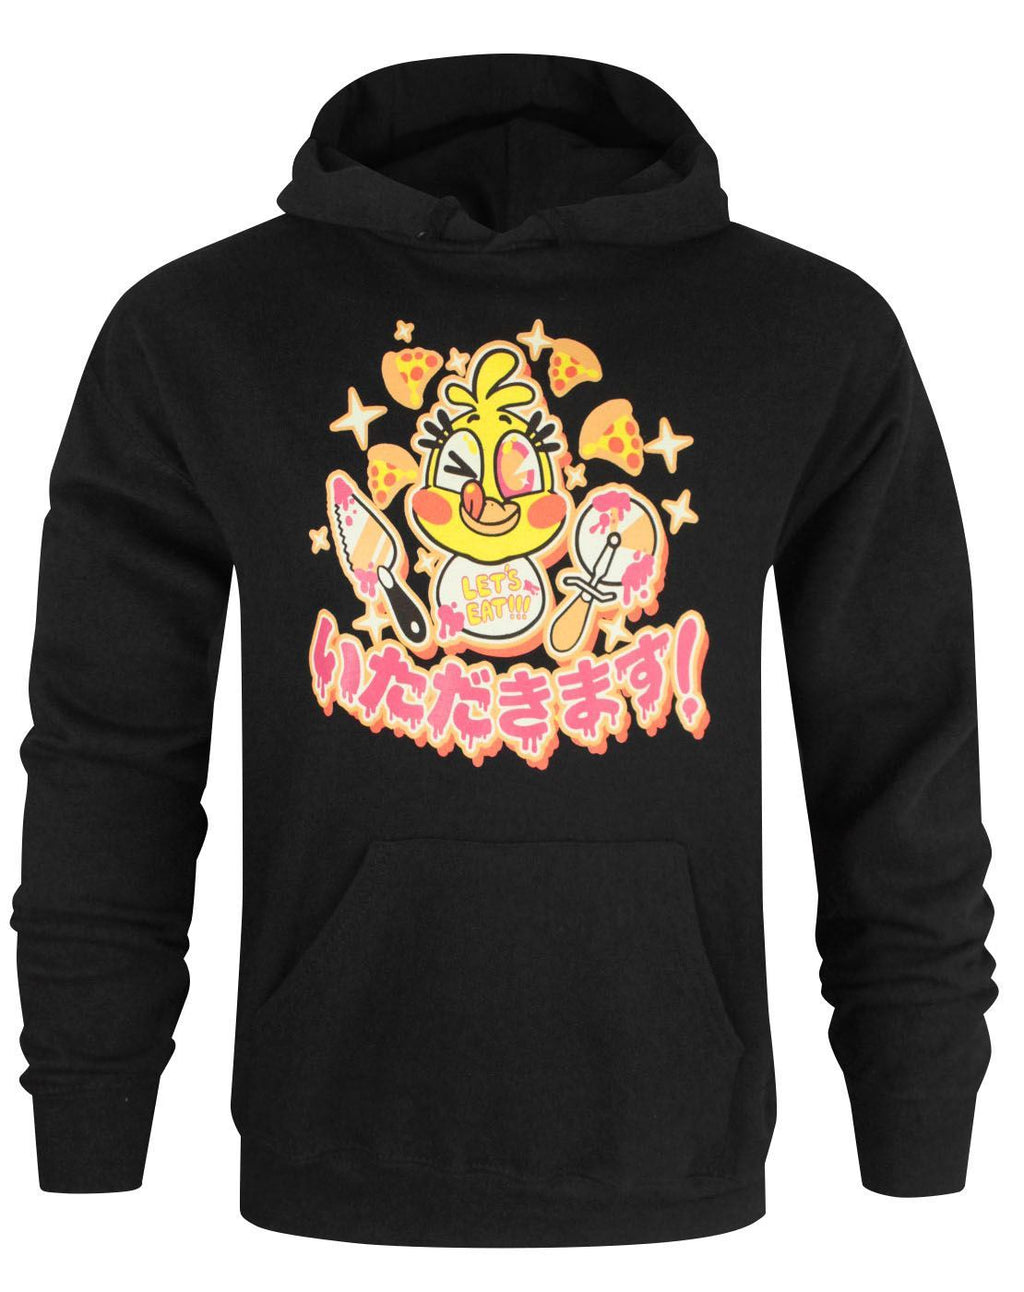 Five Nights At Freddy's Chica Chicadakimasu Men's Hoodie